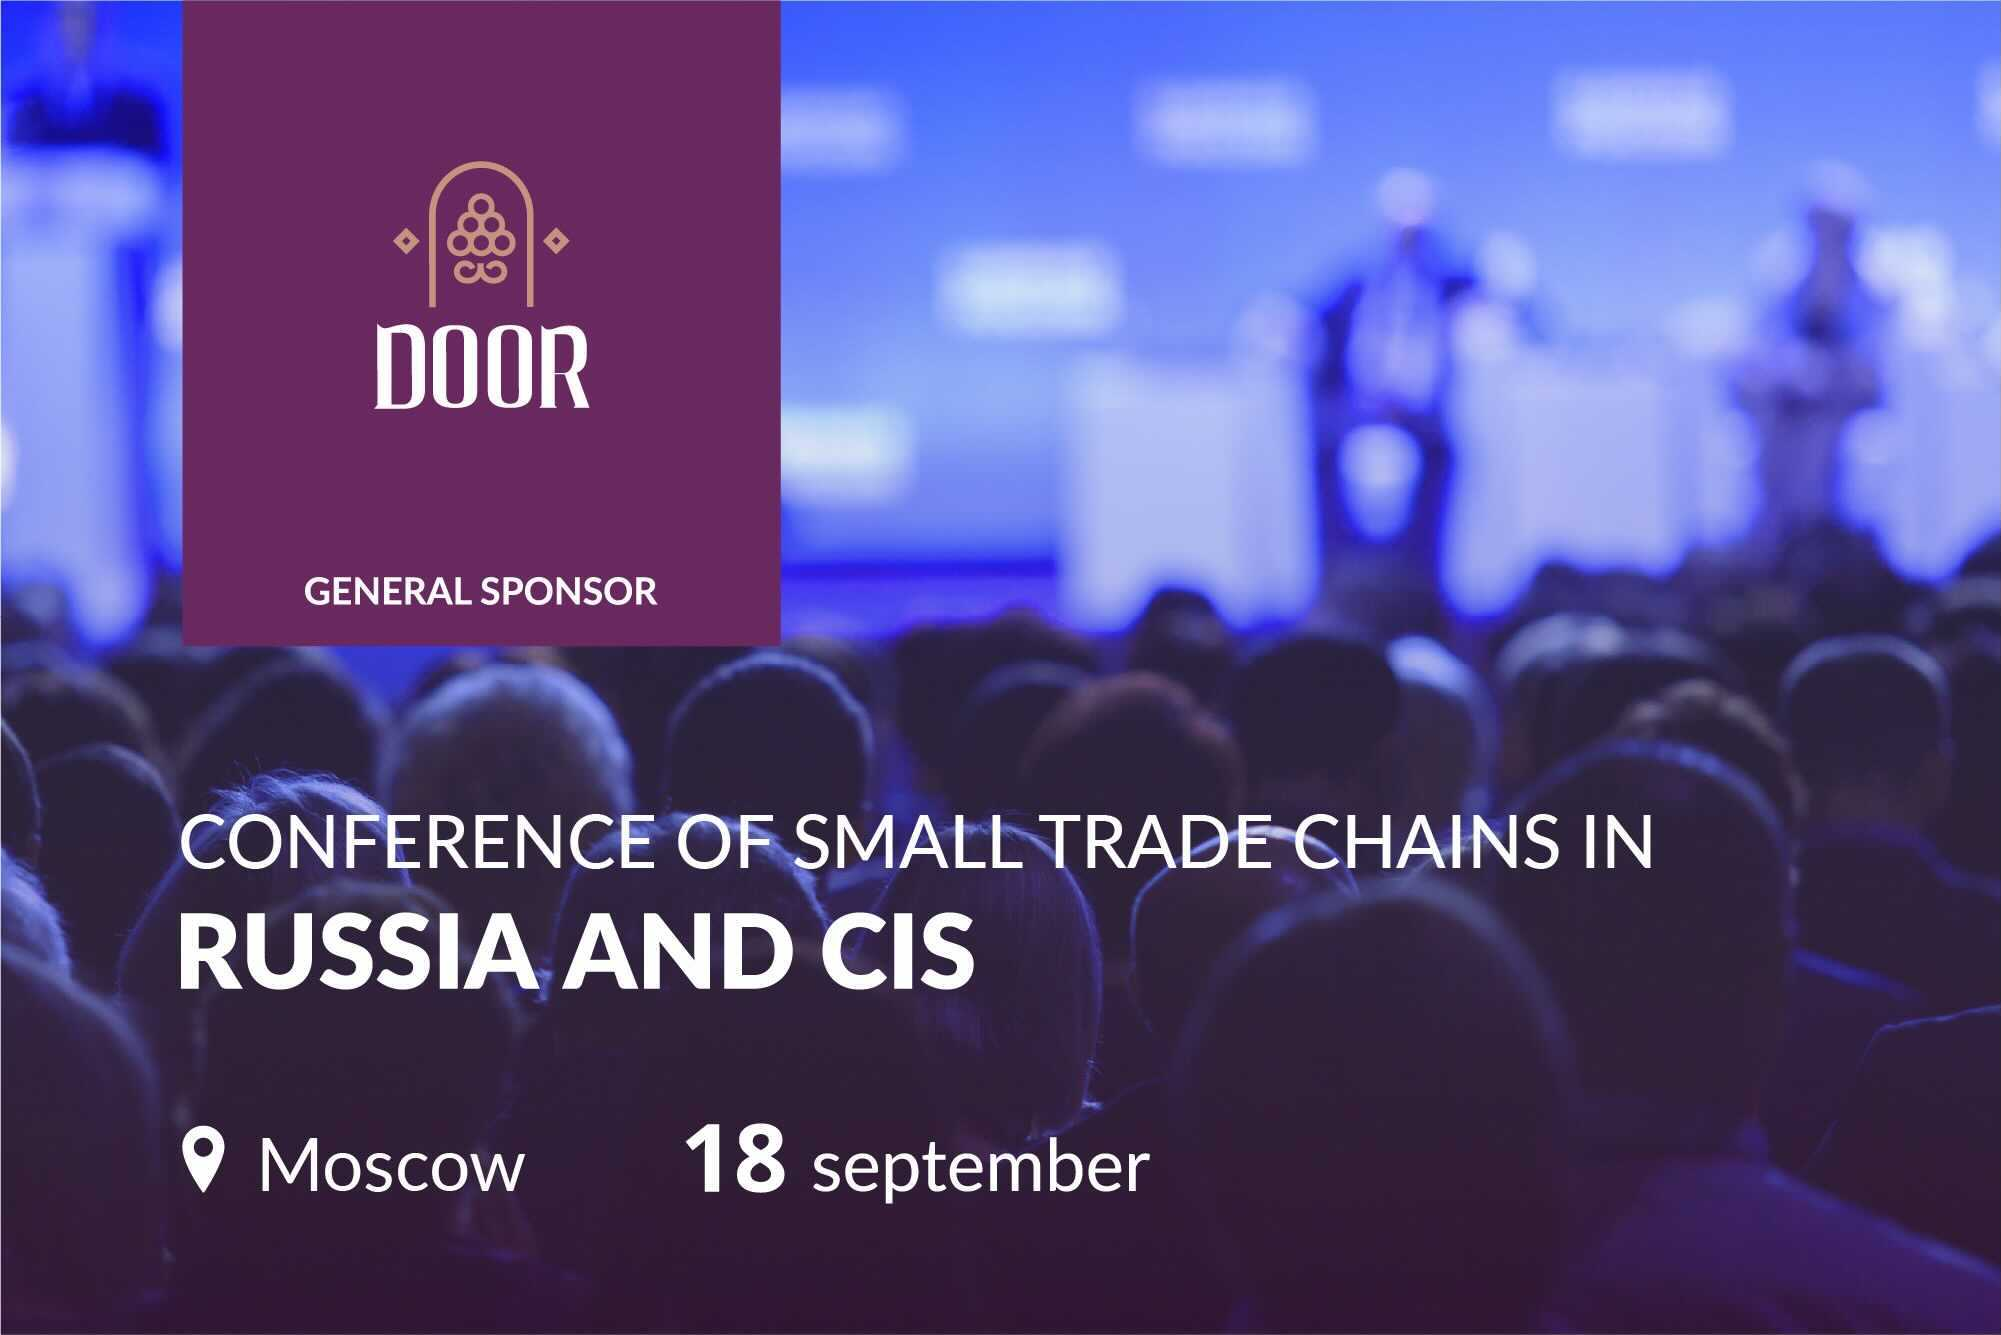 """The """"Door"""" brand of the """"ArLeAM"""" company is the general sponsor of the  Conference of Small Retail Chains in Russia and the CIS countries"""